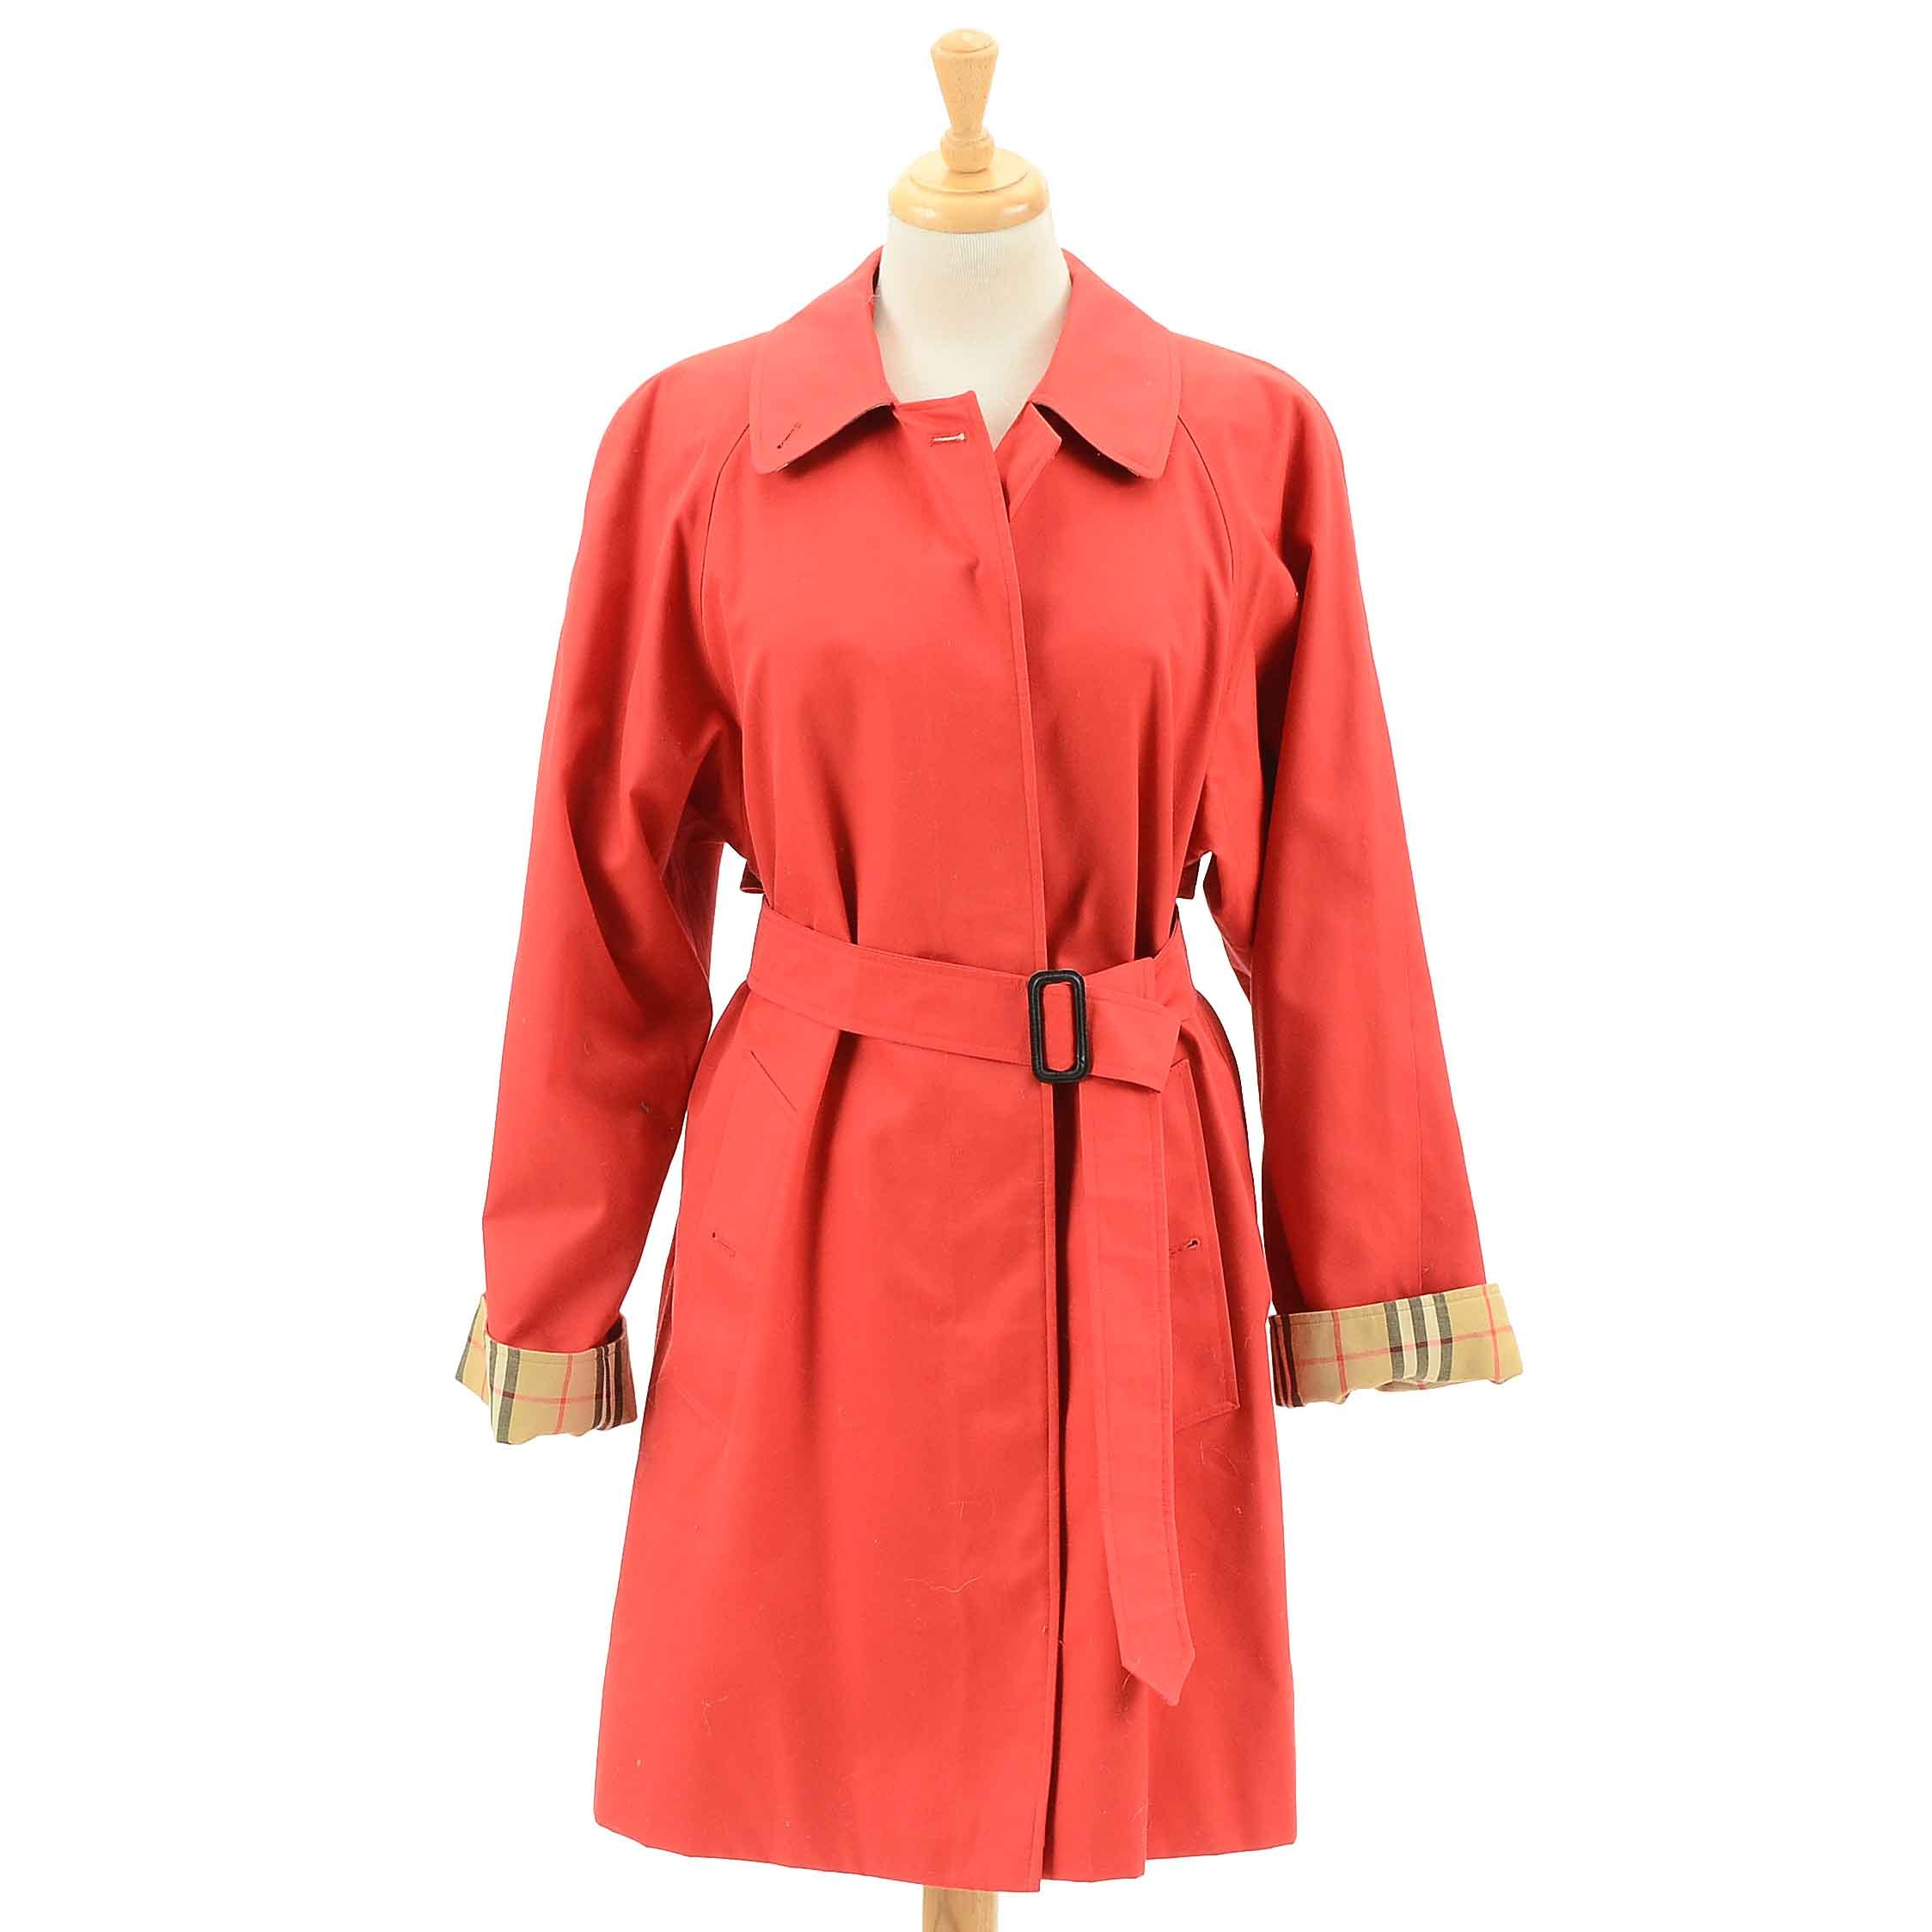 Women's Red Burberry Trench Coat